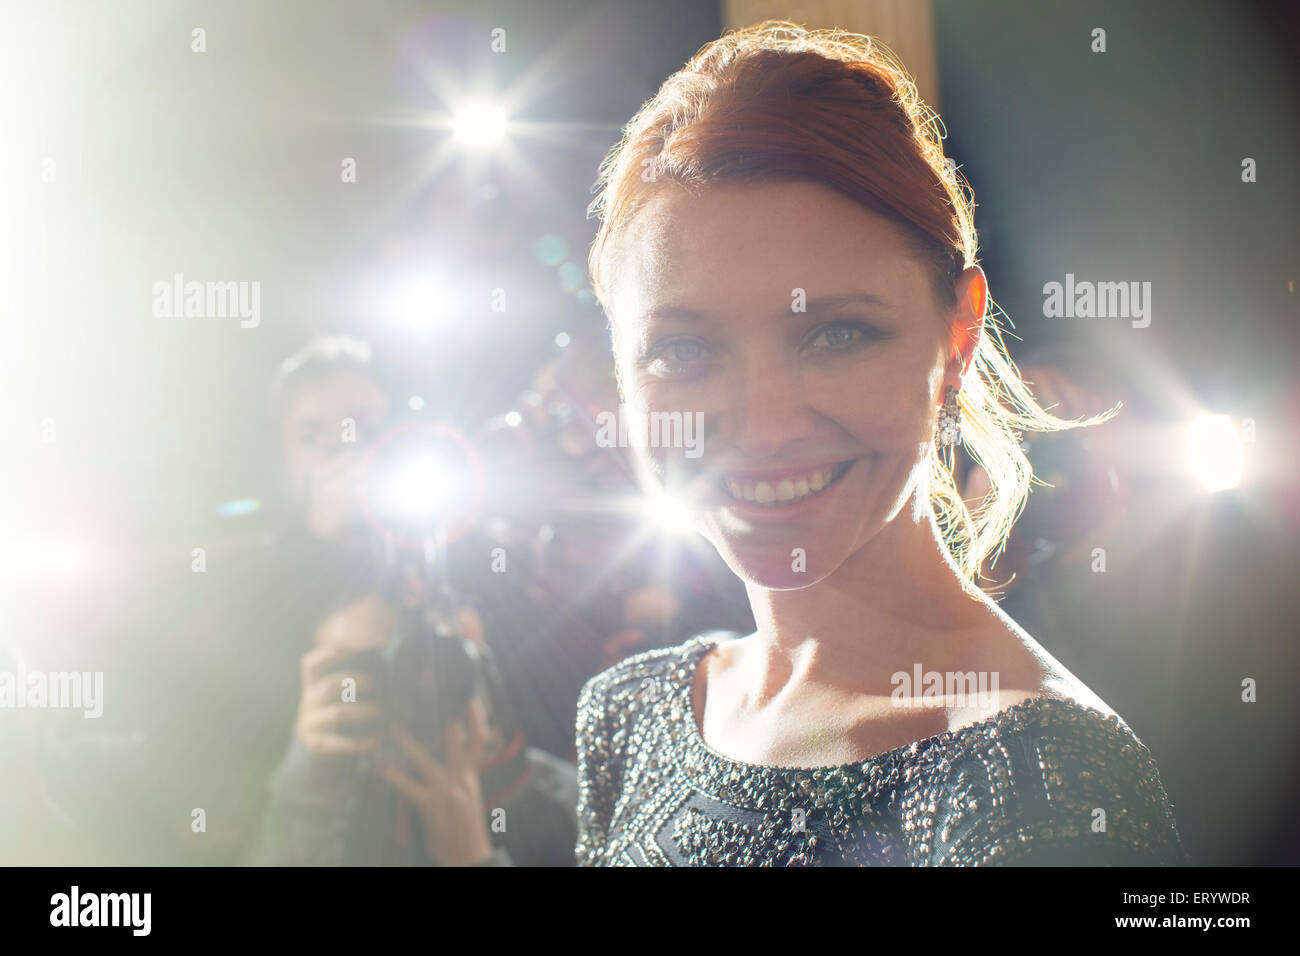 Close up portrait of smiling celebrity being photographed at paparazzi event - Stock Image